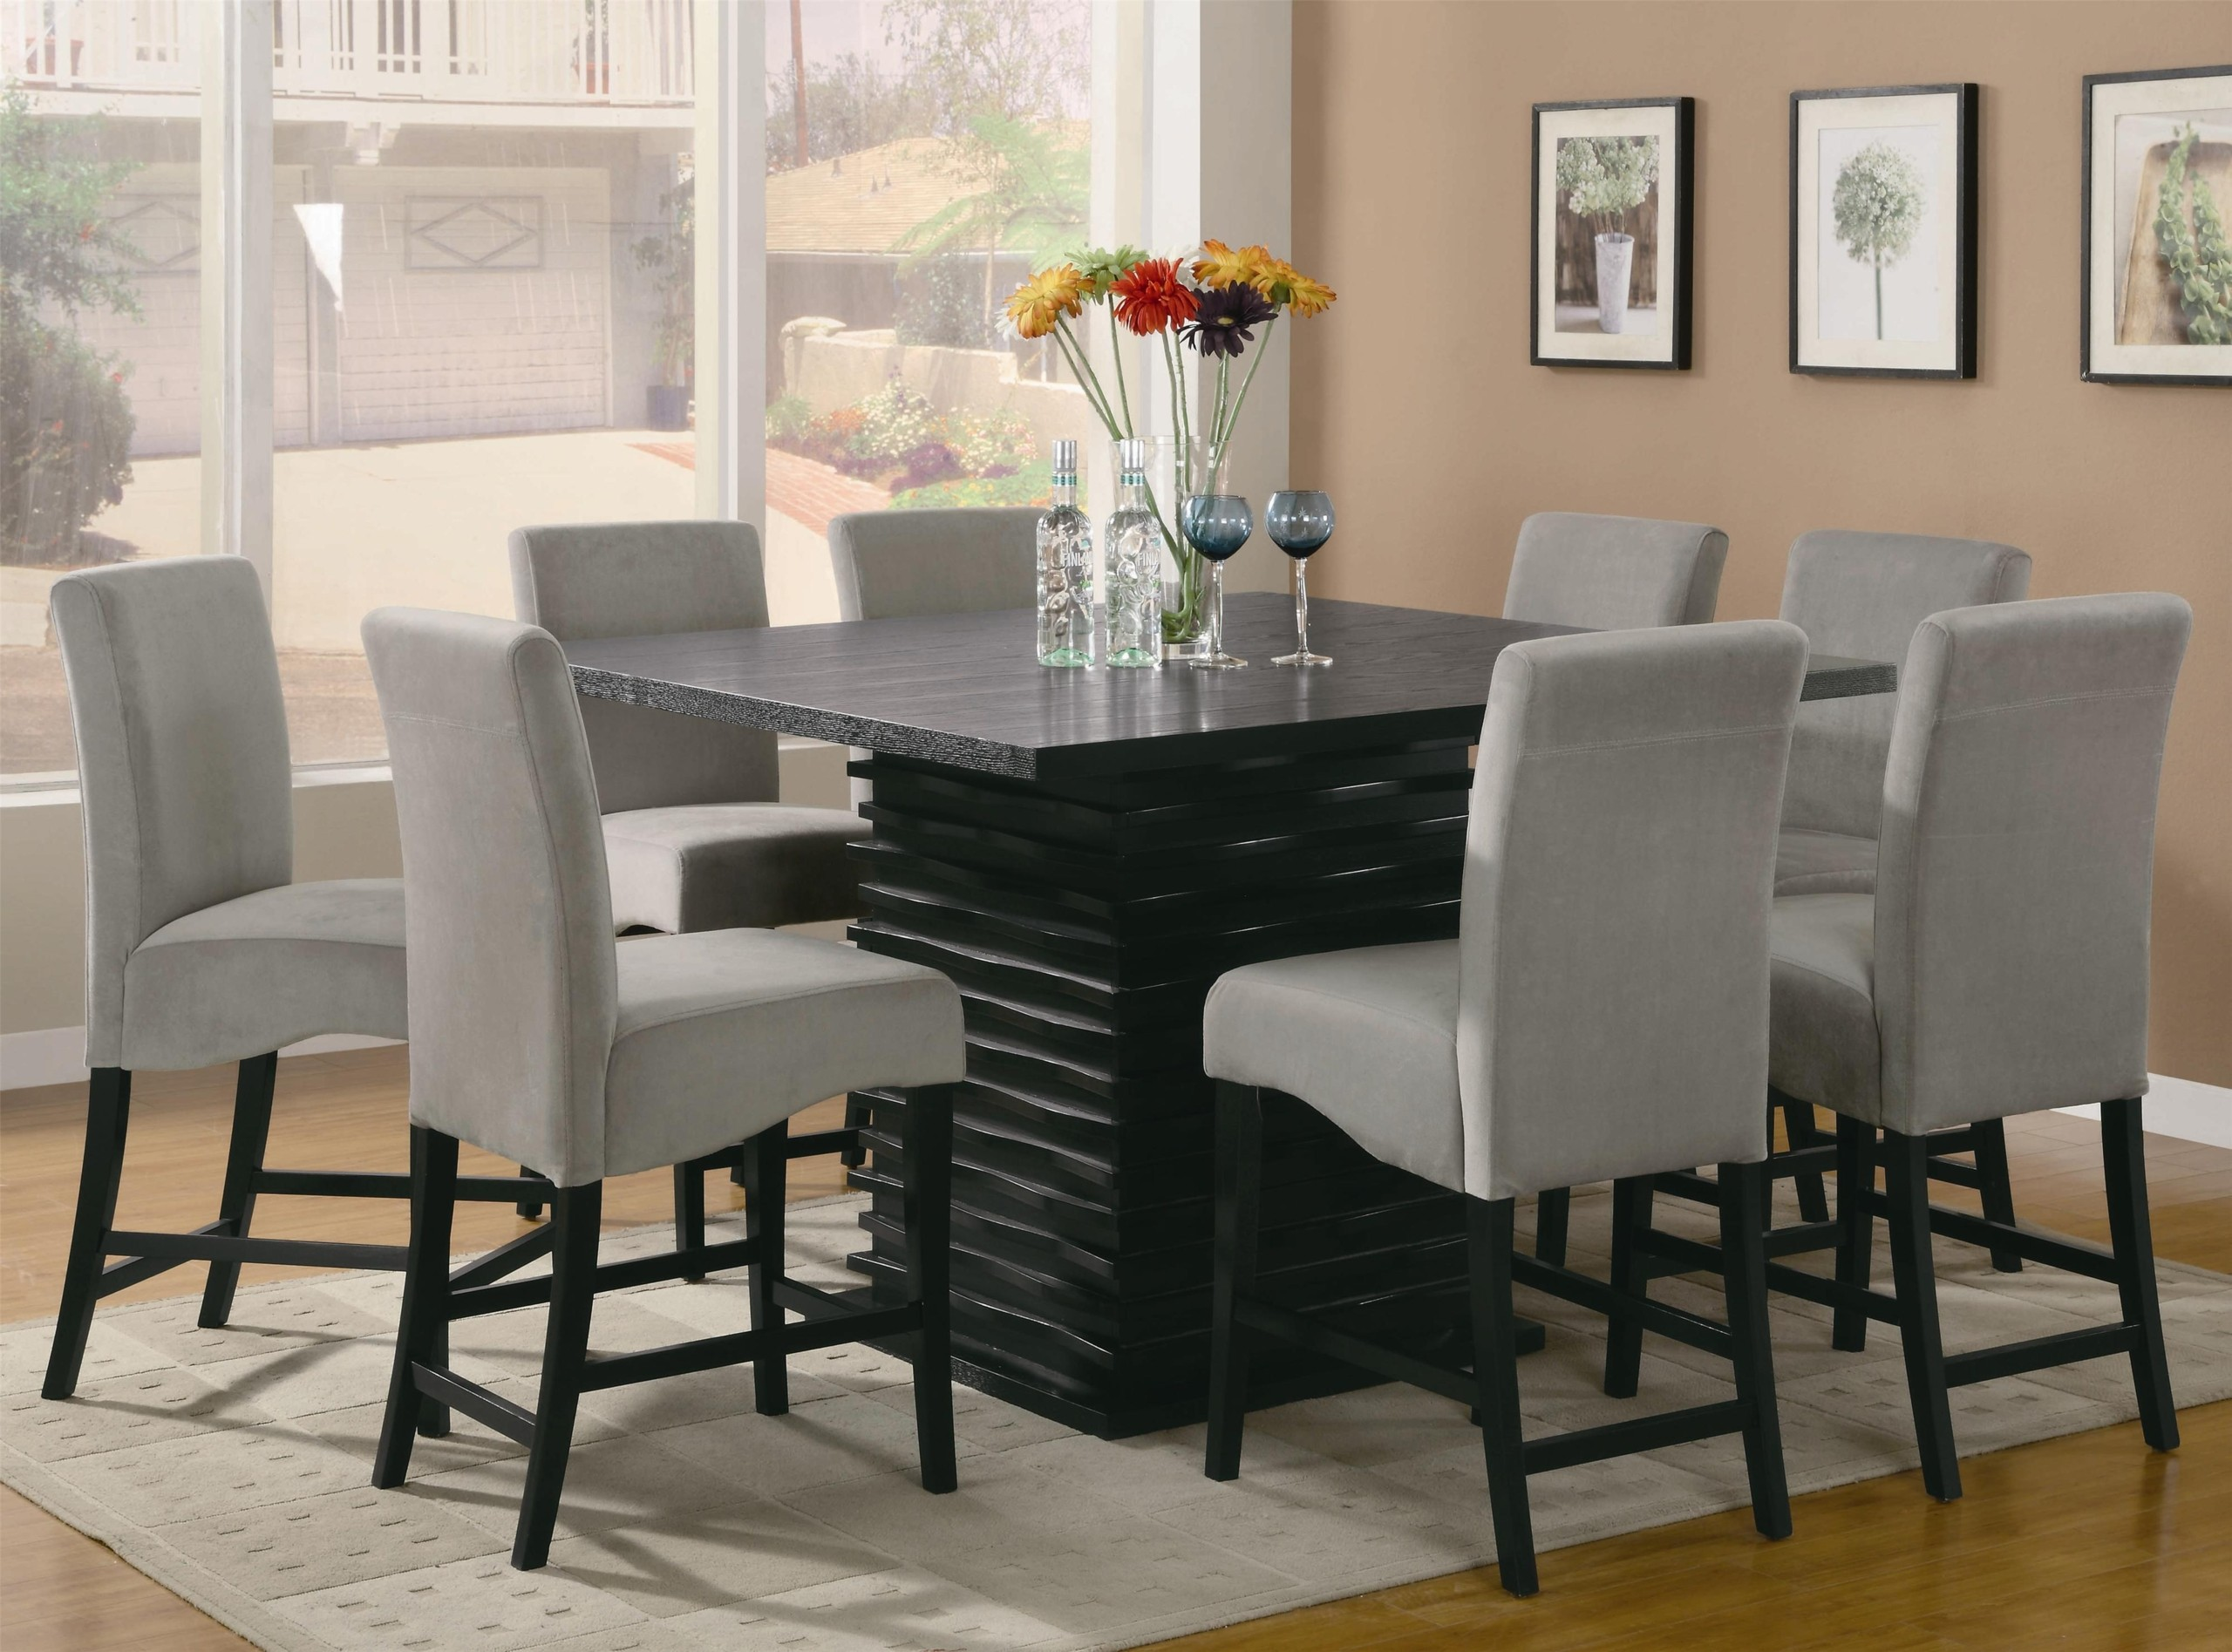 Counter Height Table Sets With Storage Ideas On Foter